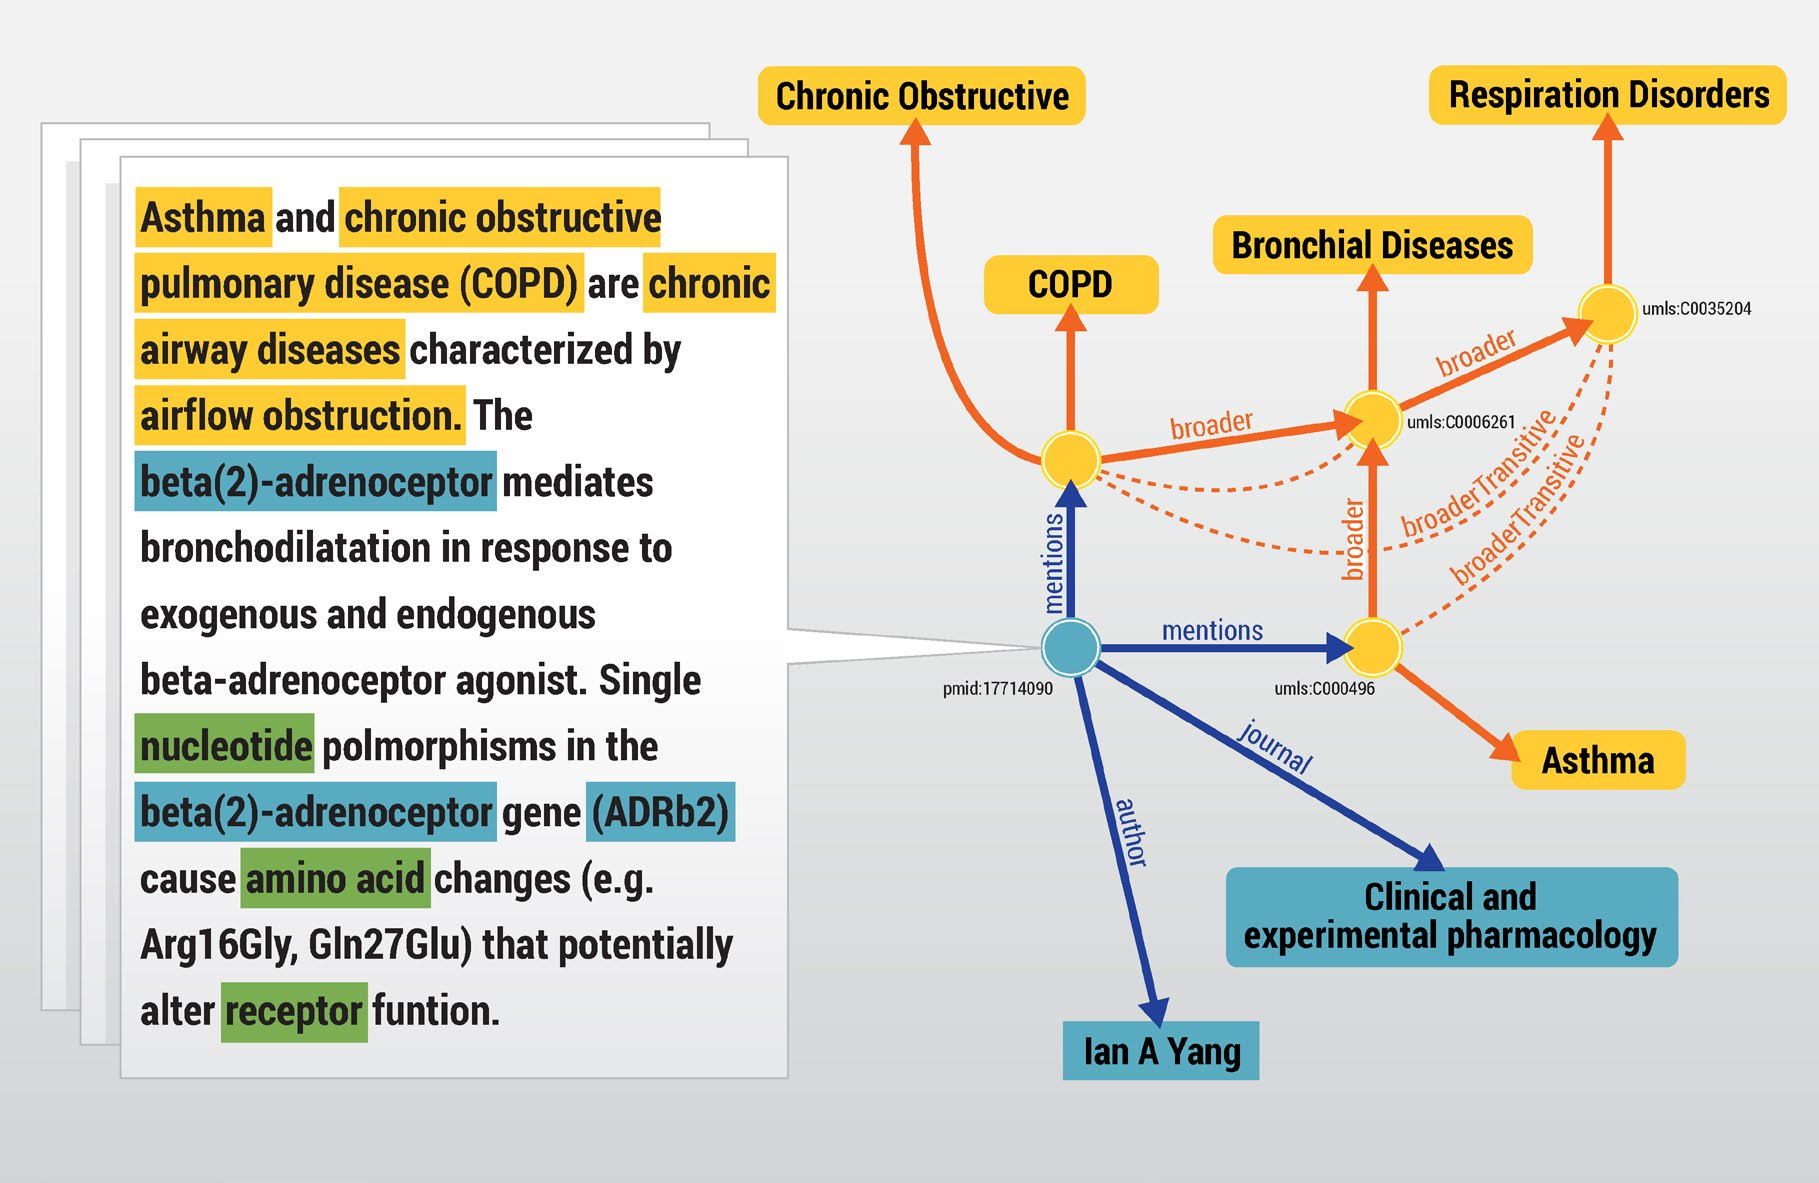 Figure 5: Domain Specific Text Mining The research article above mentions Asthma and COPD. Broader classifications of these diseases are also represented in the triplestore.